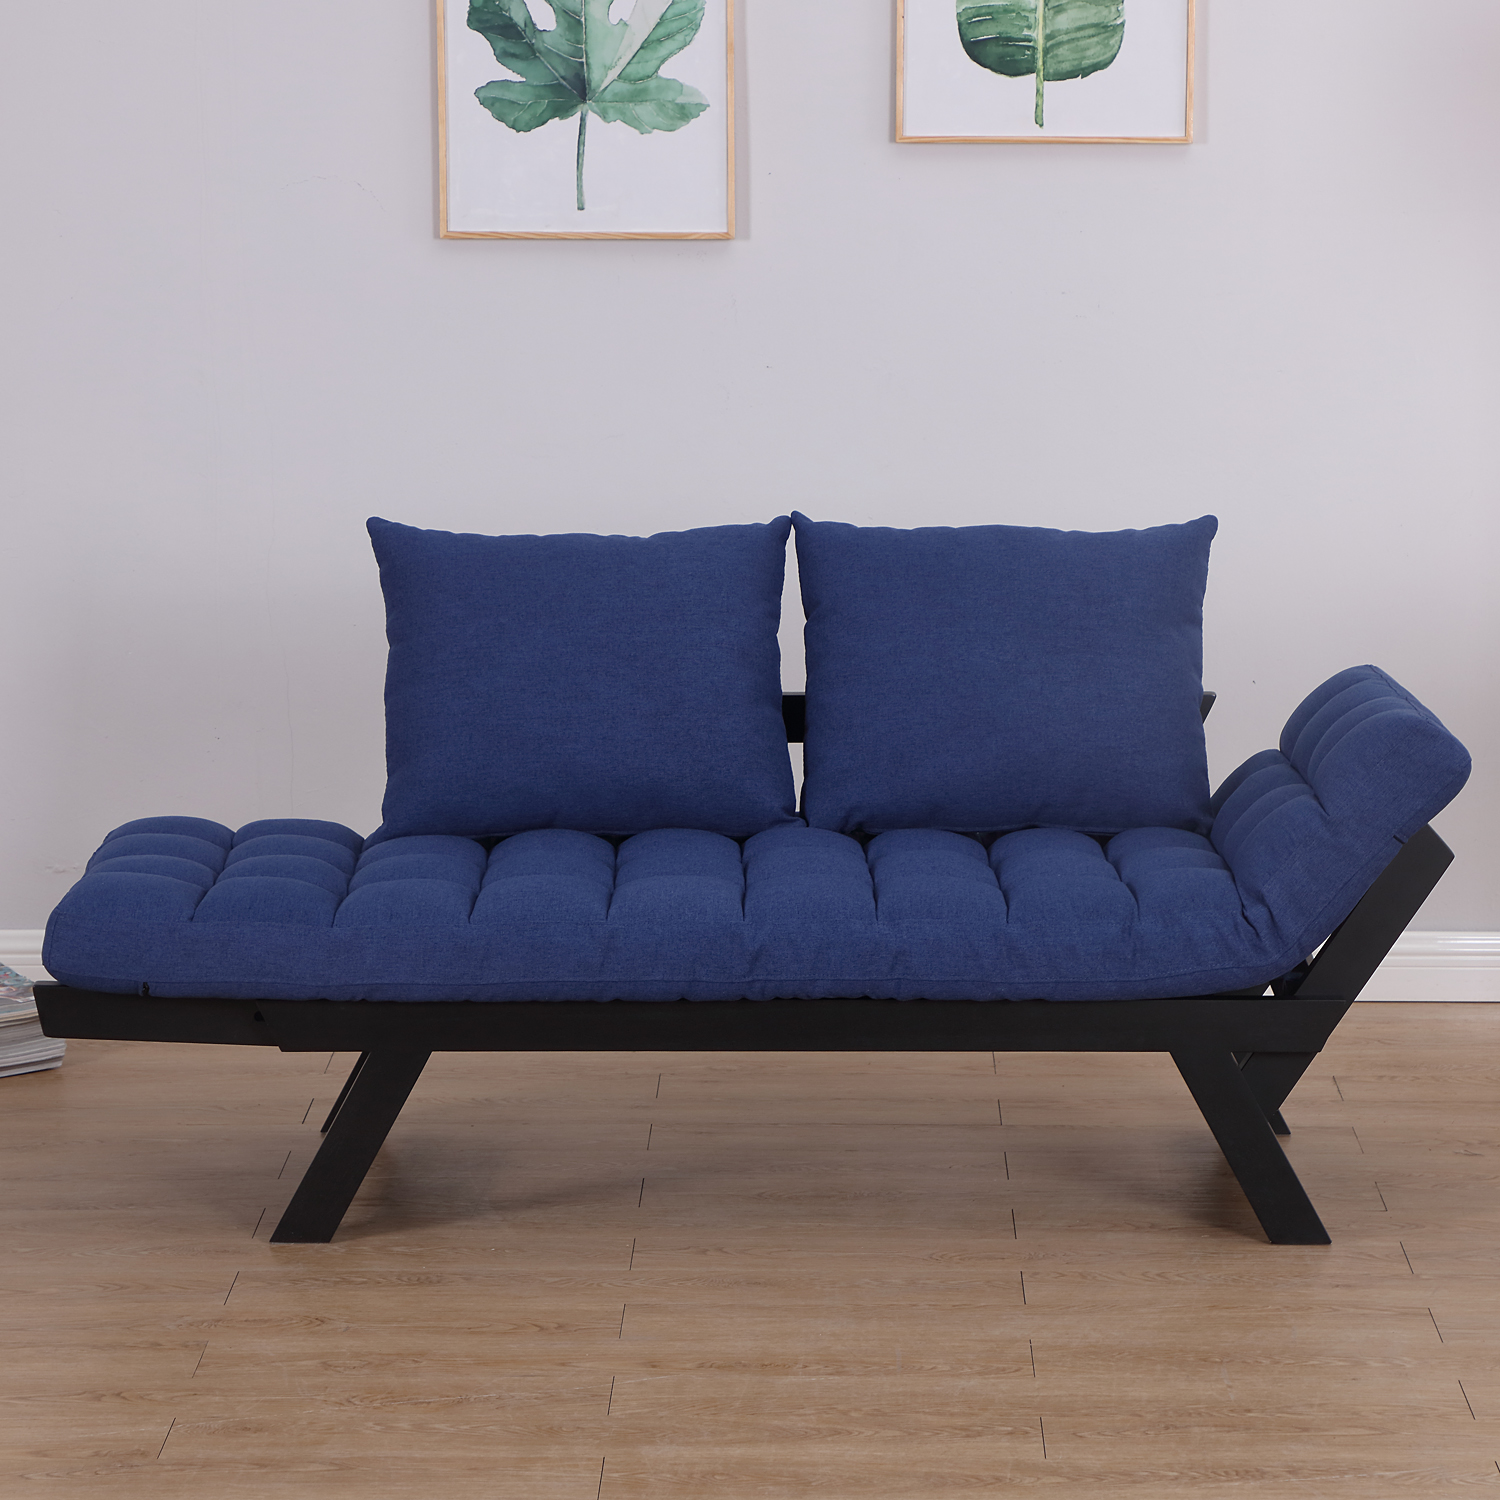 Convertible-Sofa-Bed-Sleeper-Couch-Chaise-Lounge-Chair-Adjustable-Padded-Pillow thumbnail 14